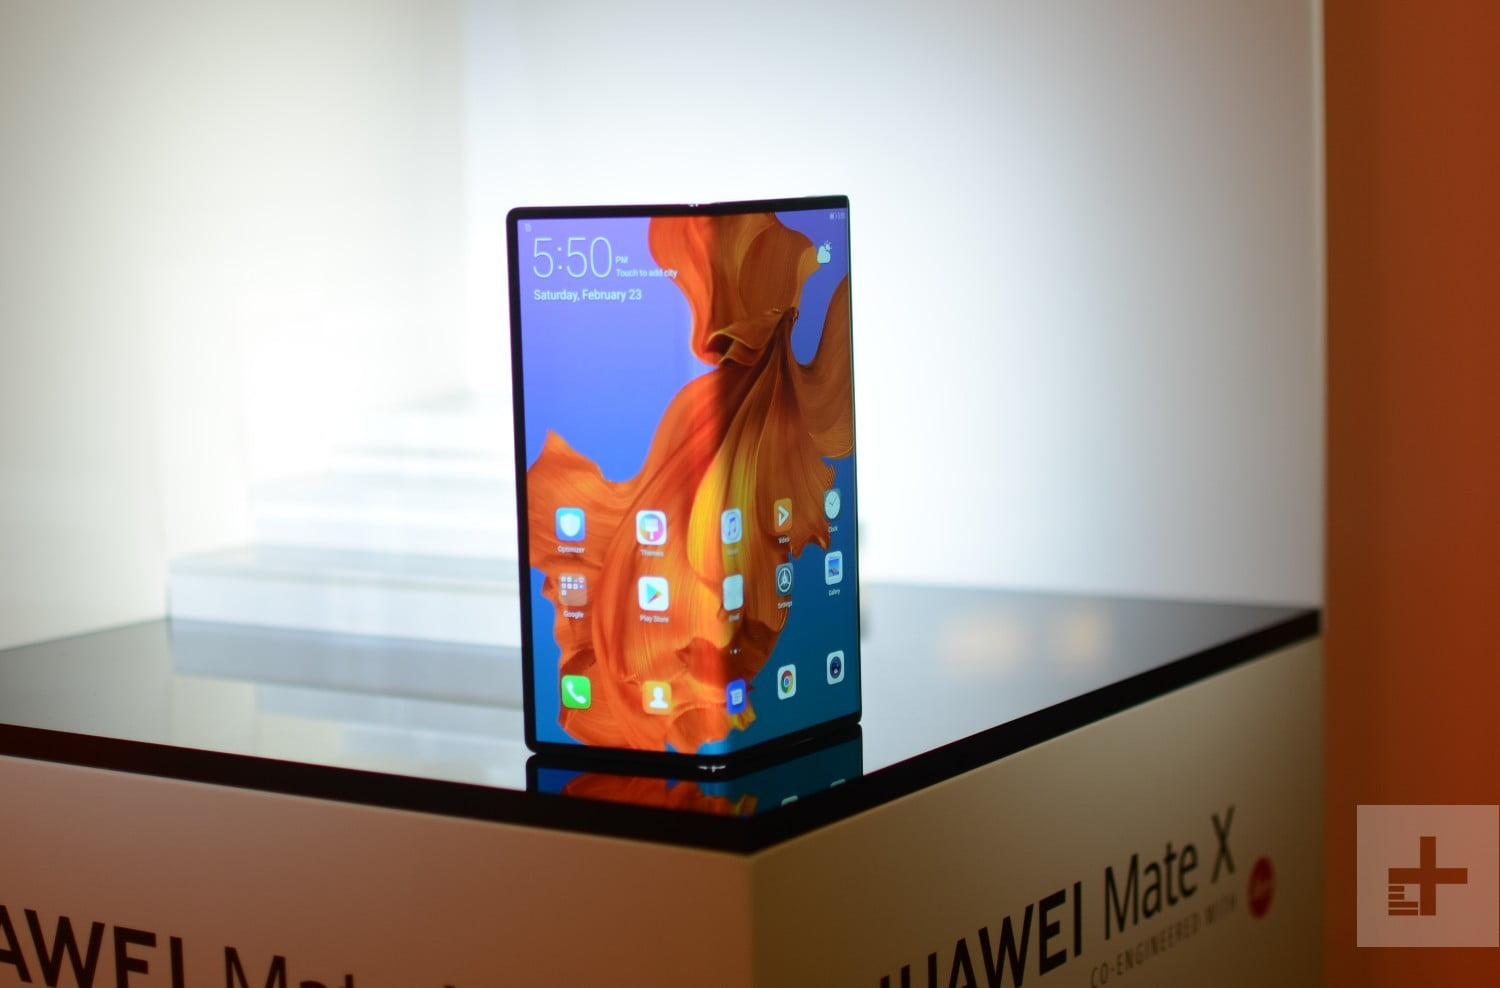 Huawei Mate X: News, Design, Specs, Features, Release | Digital Trends